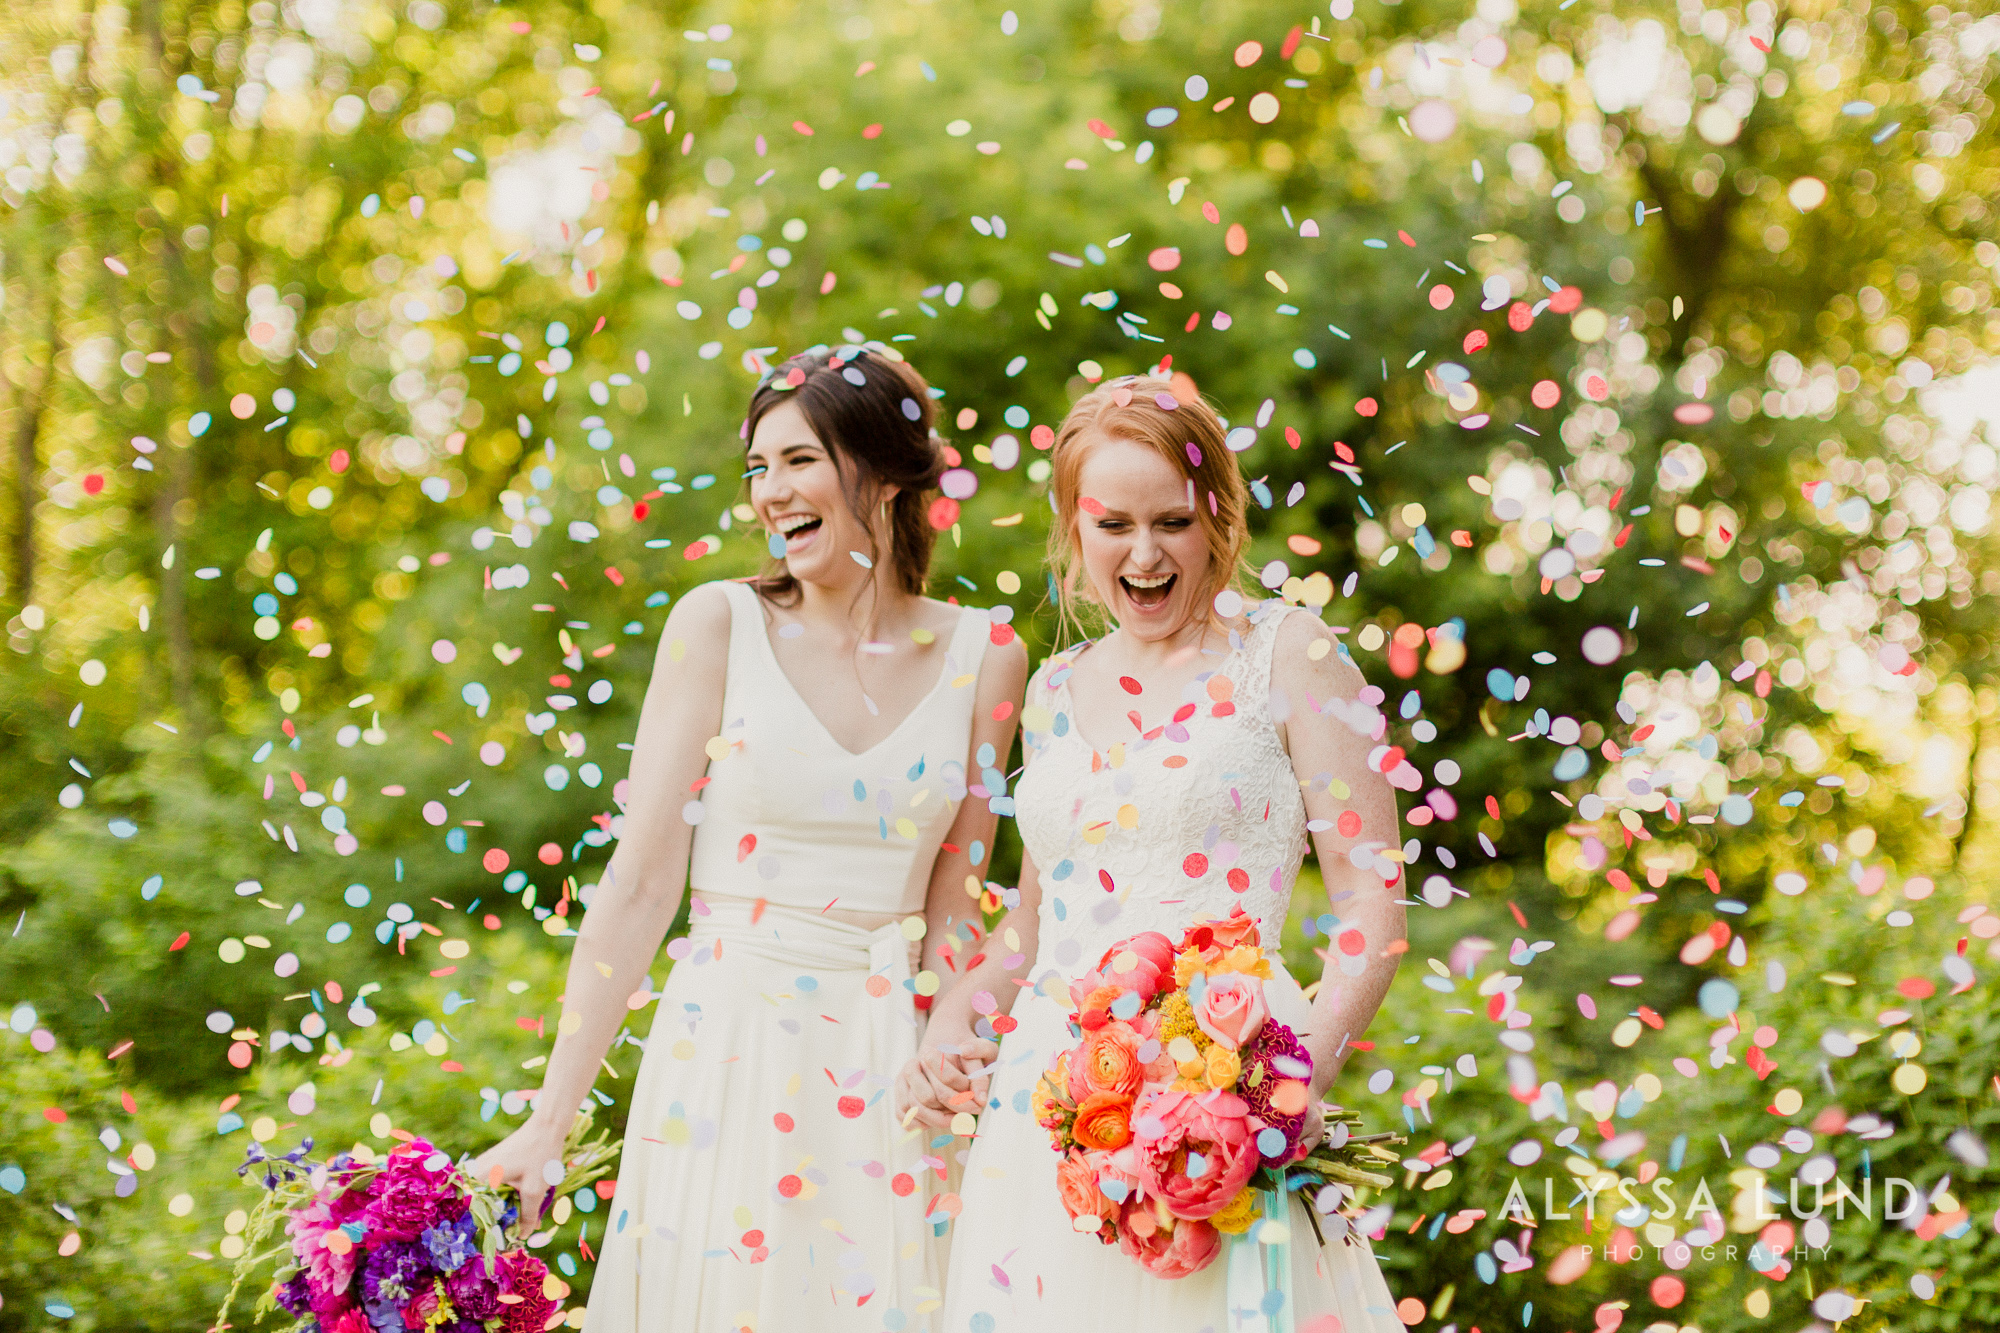 Queer wedding photography inspiration by Alyssa Lund Photography-17.jpg